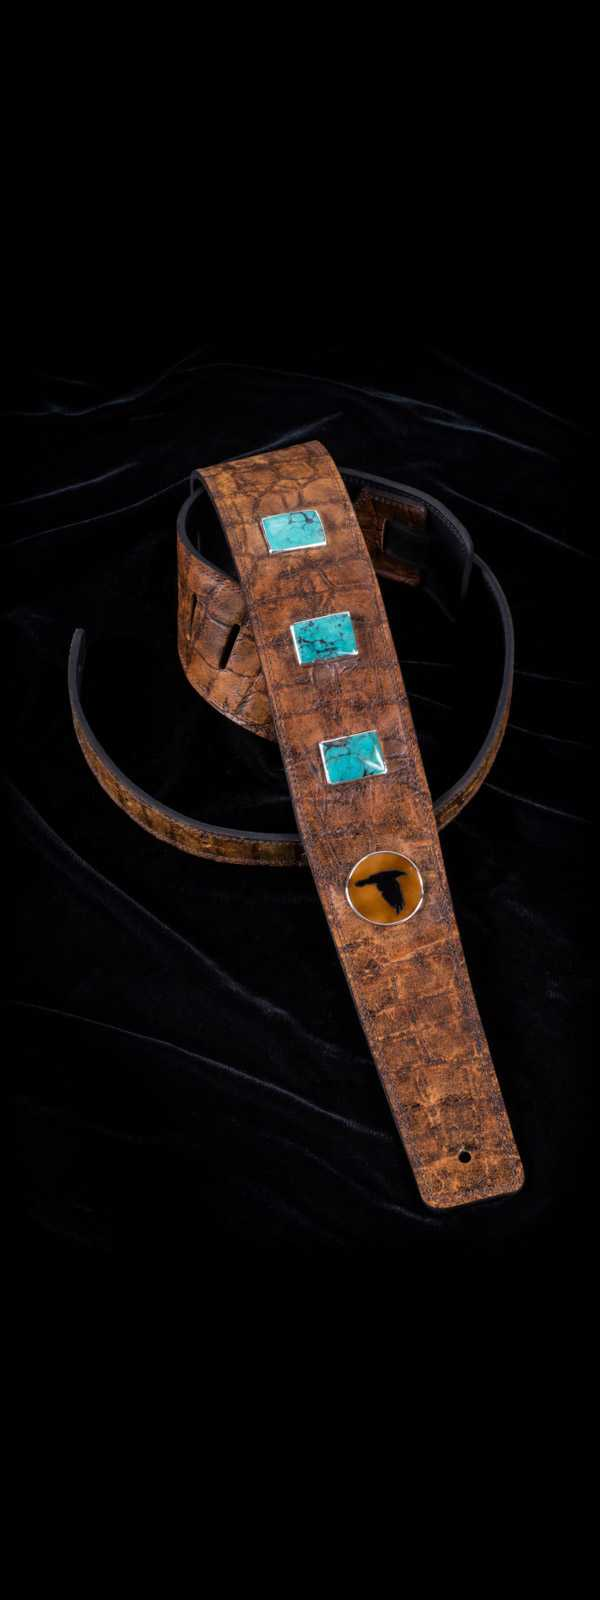 The Raven Works 3-Stone Turquoise/Amber-and-Black Reptile Hide Guitar Strap